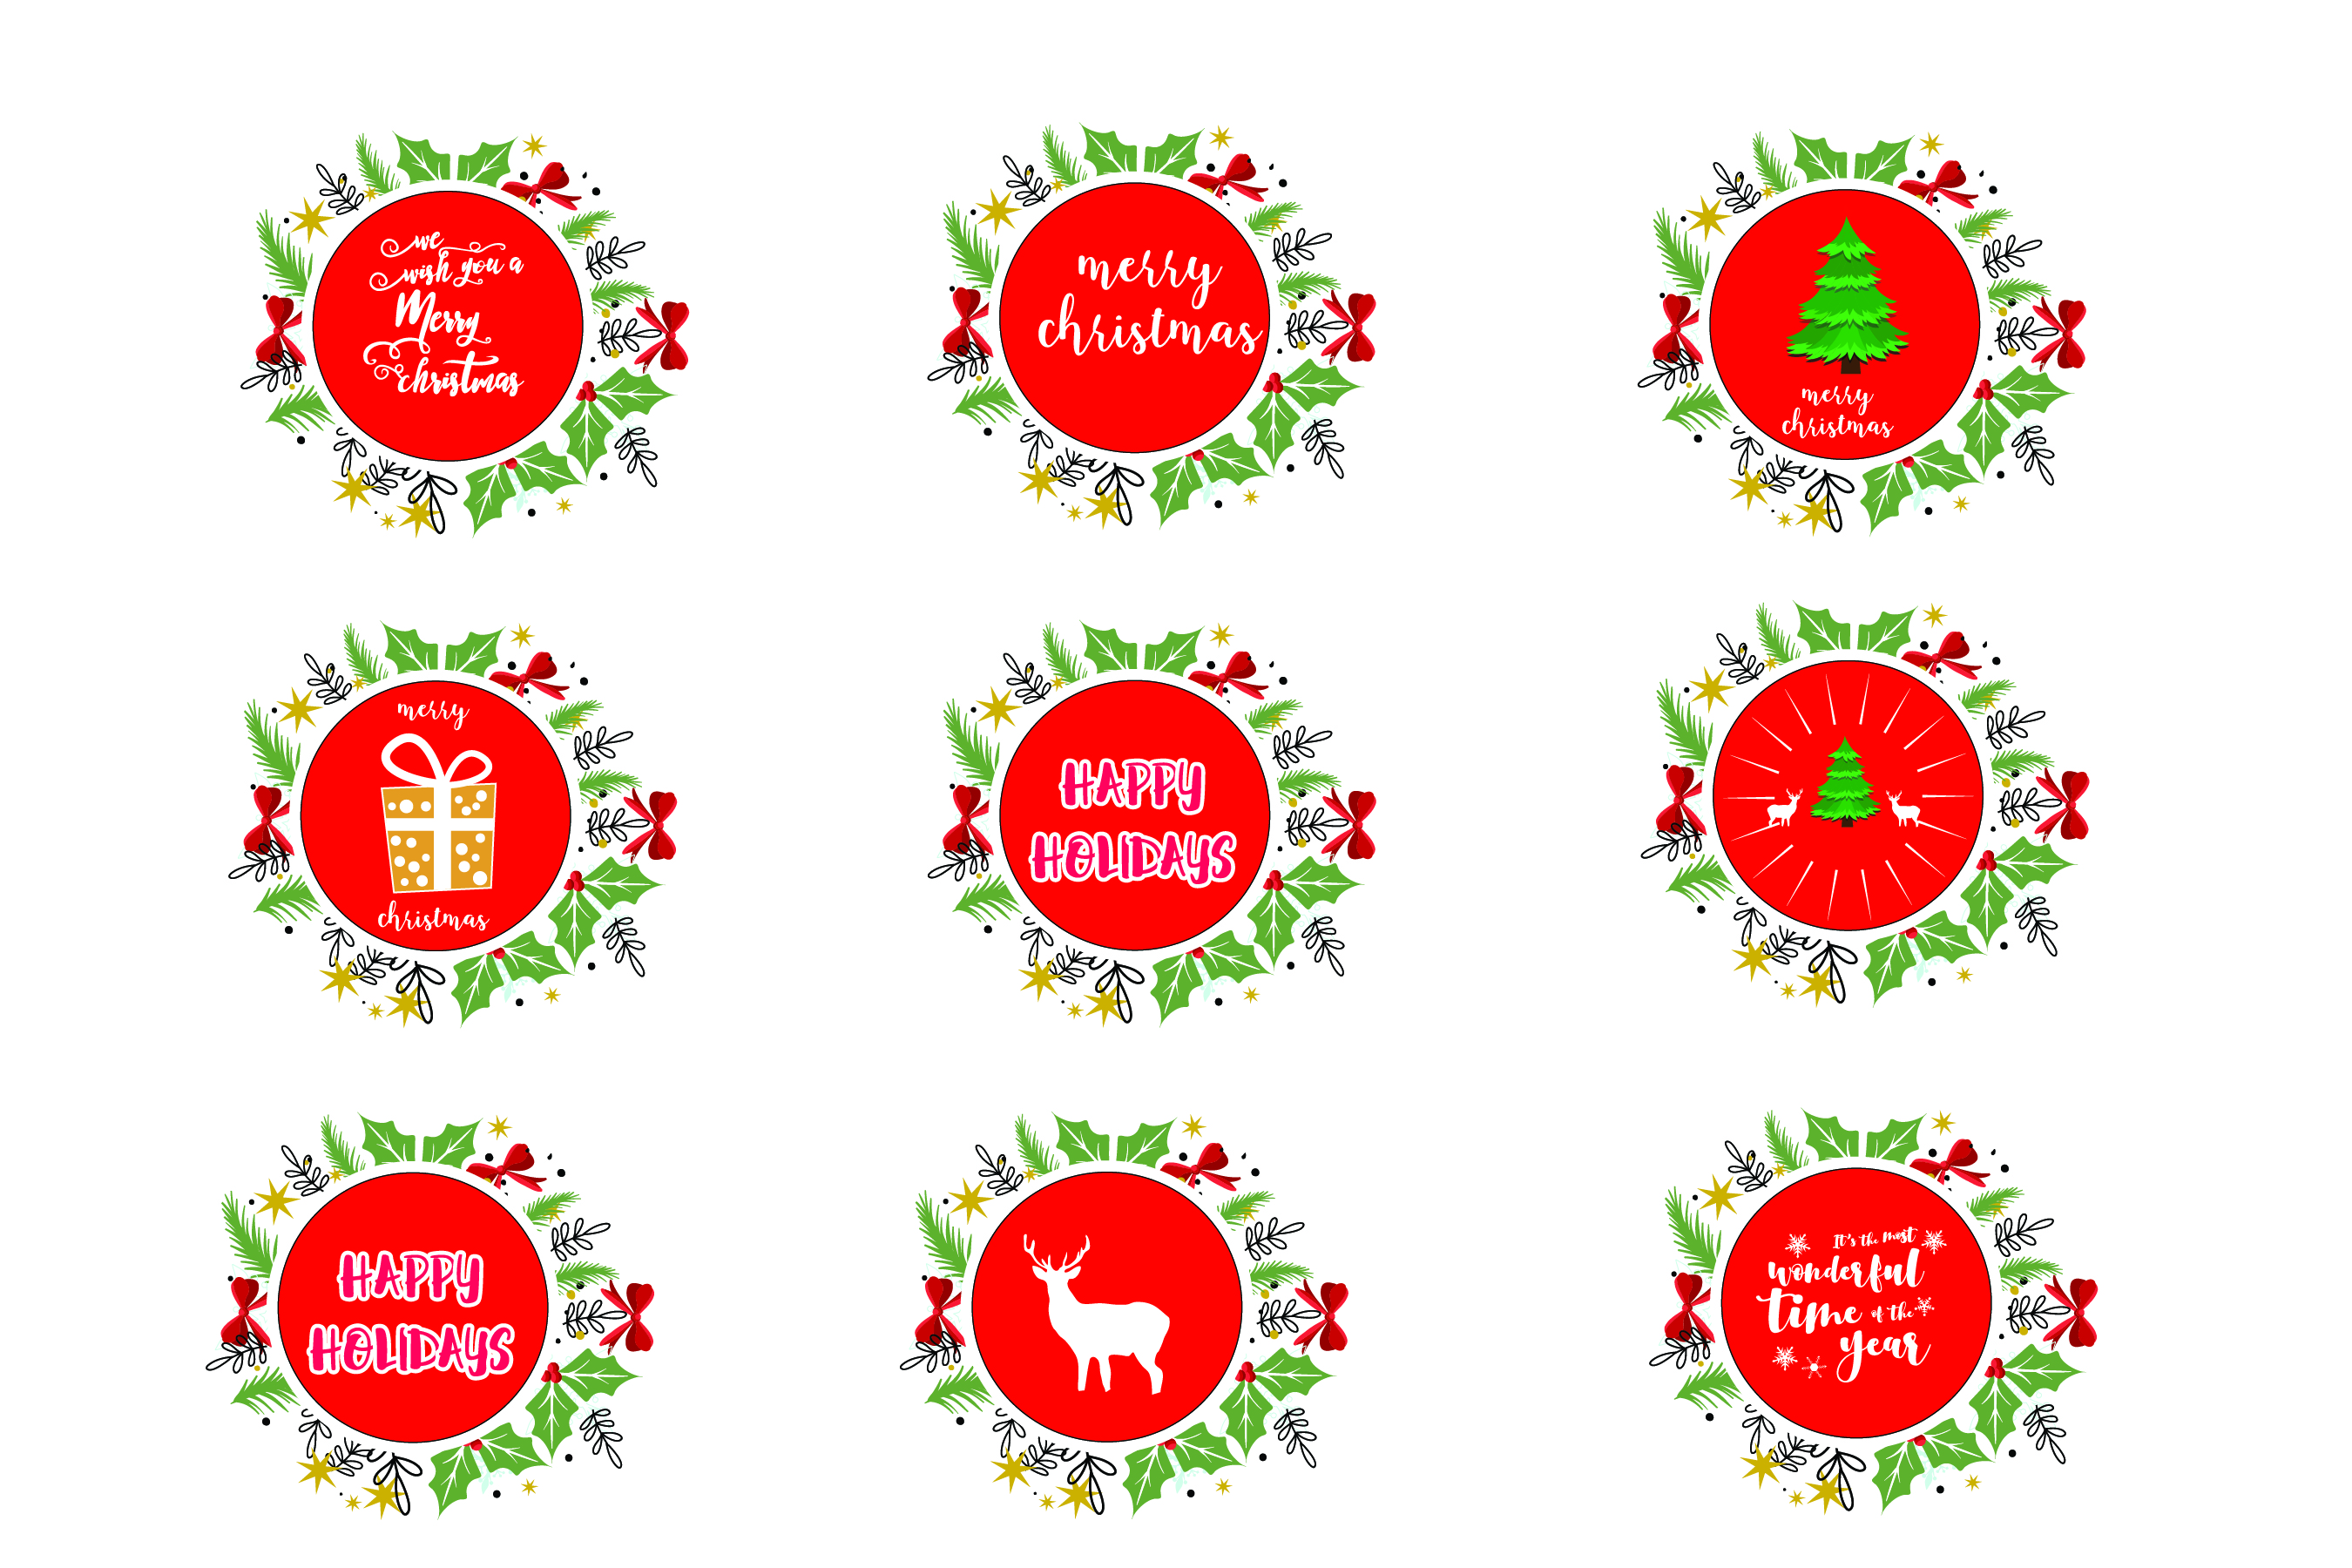 Download Free Merry Christmas Designs Bundle Graphic By Bluestar Creatives for Cricut Explore, Silhouette and other cutting machines.